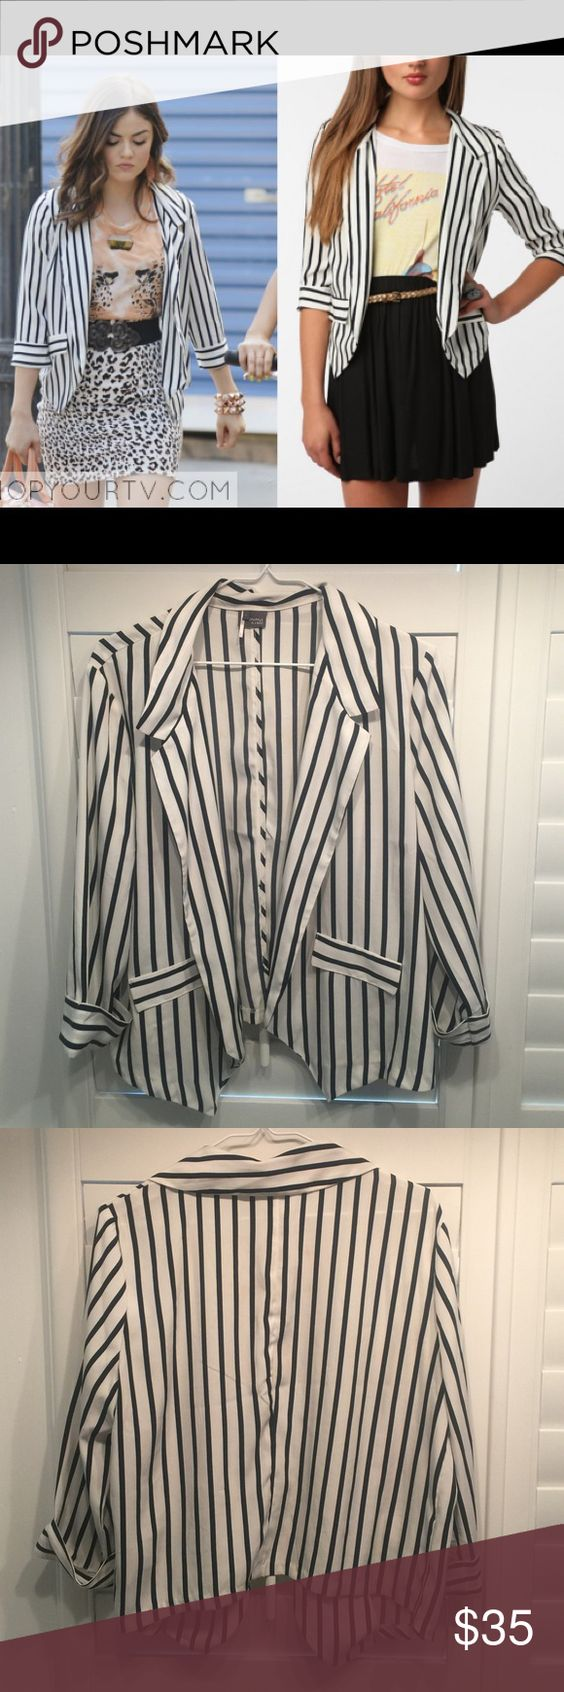 Like new Urban Outfitters striped drapey blazer Like new Black and white striped lightweight drapey blazer/jacket from Urban Outfitters. 100% Polyester 3/4 sleeves. Would be cute with a band tee and statement necklace. Sparkle & Fade Jackets & Coats Blazers